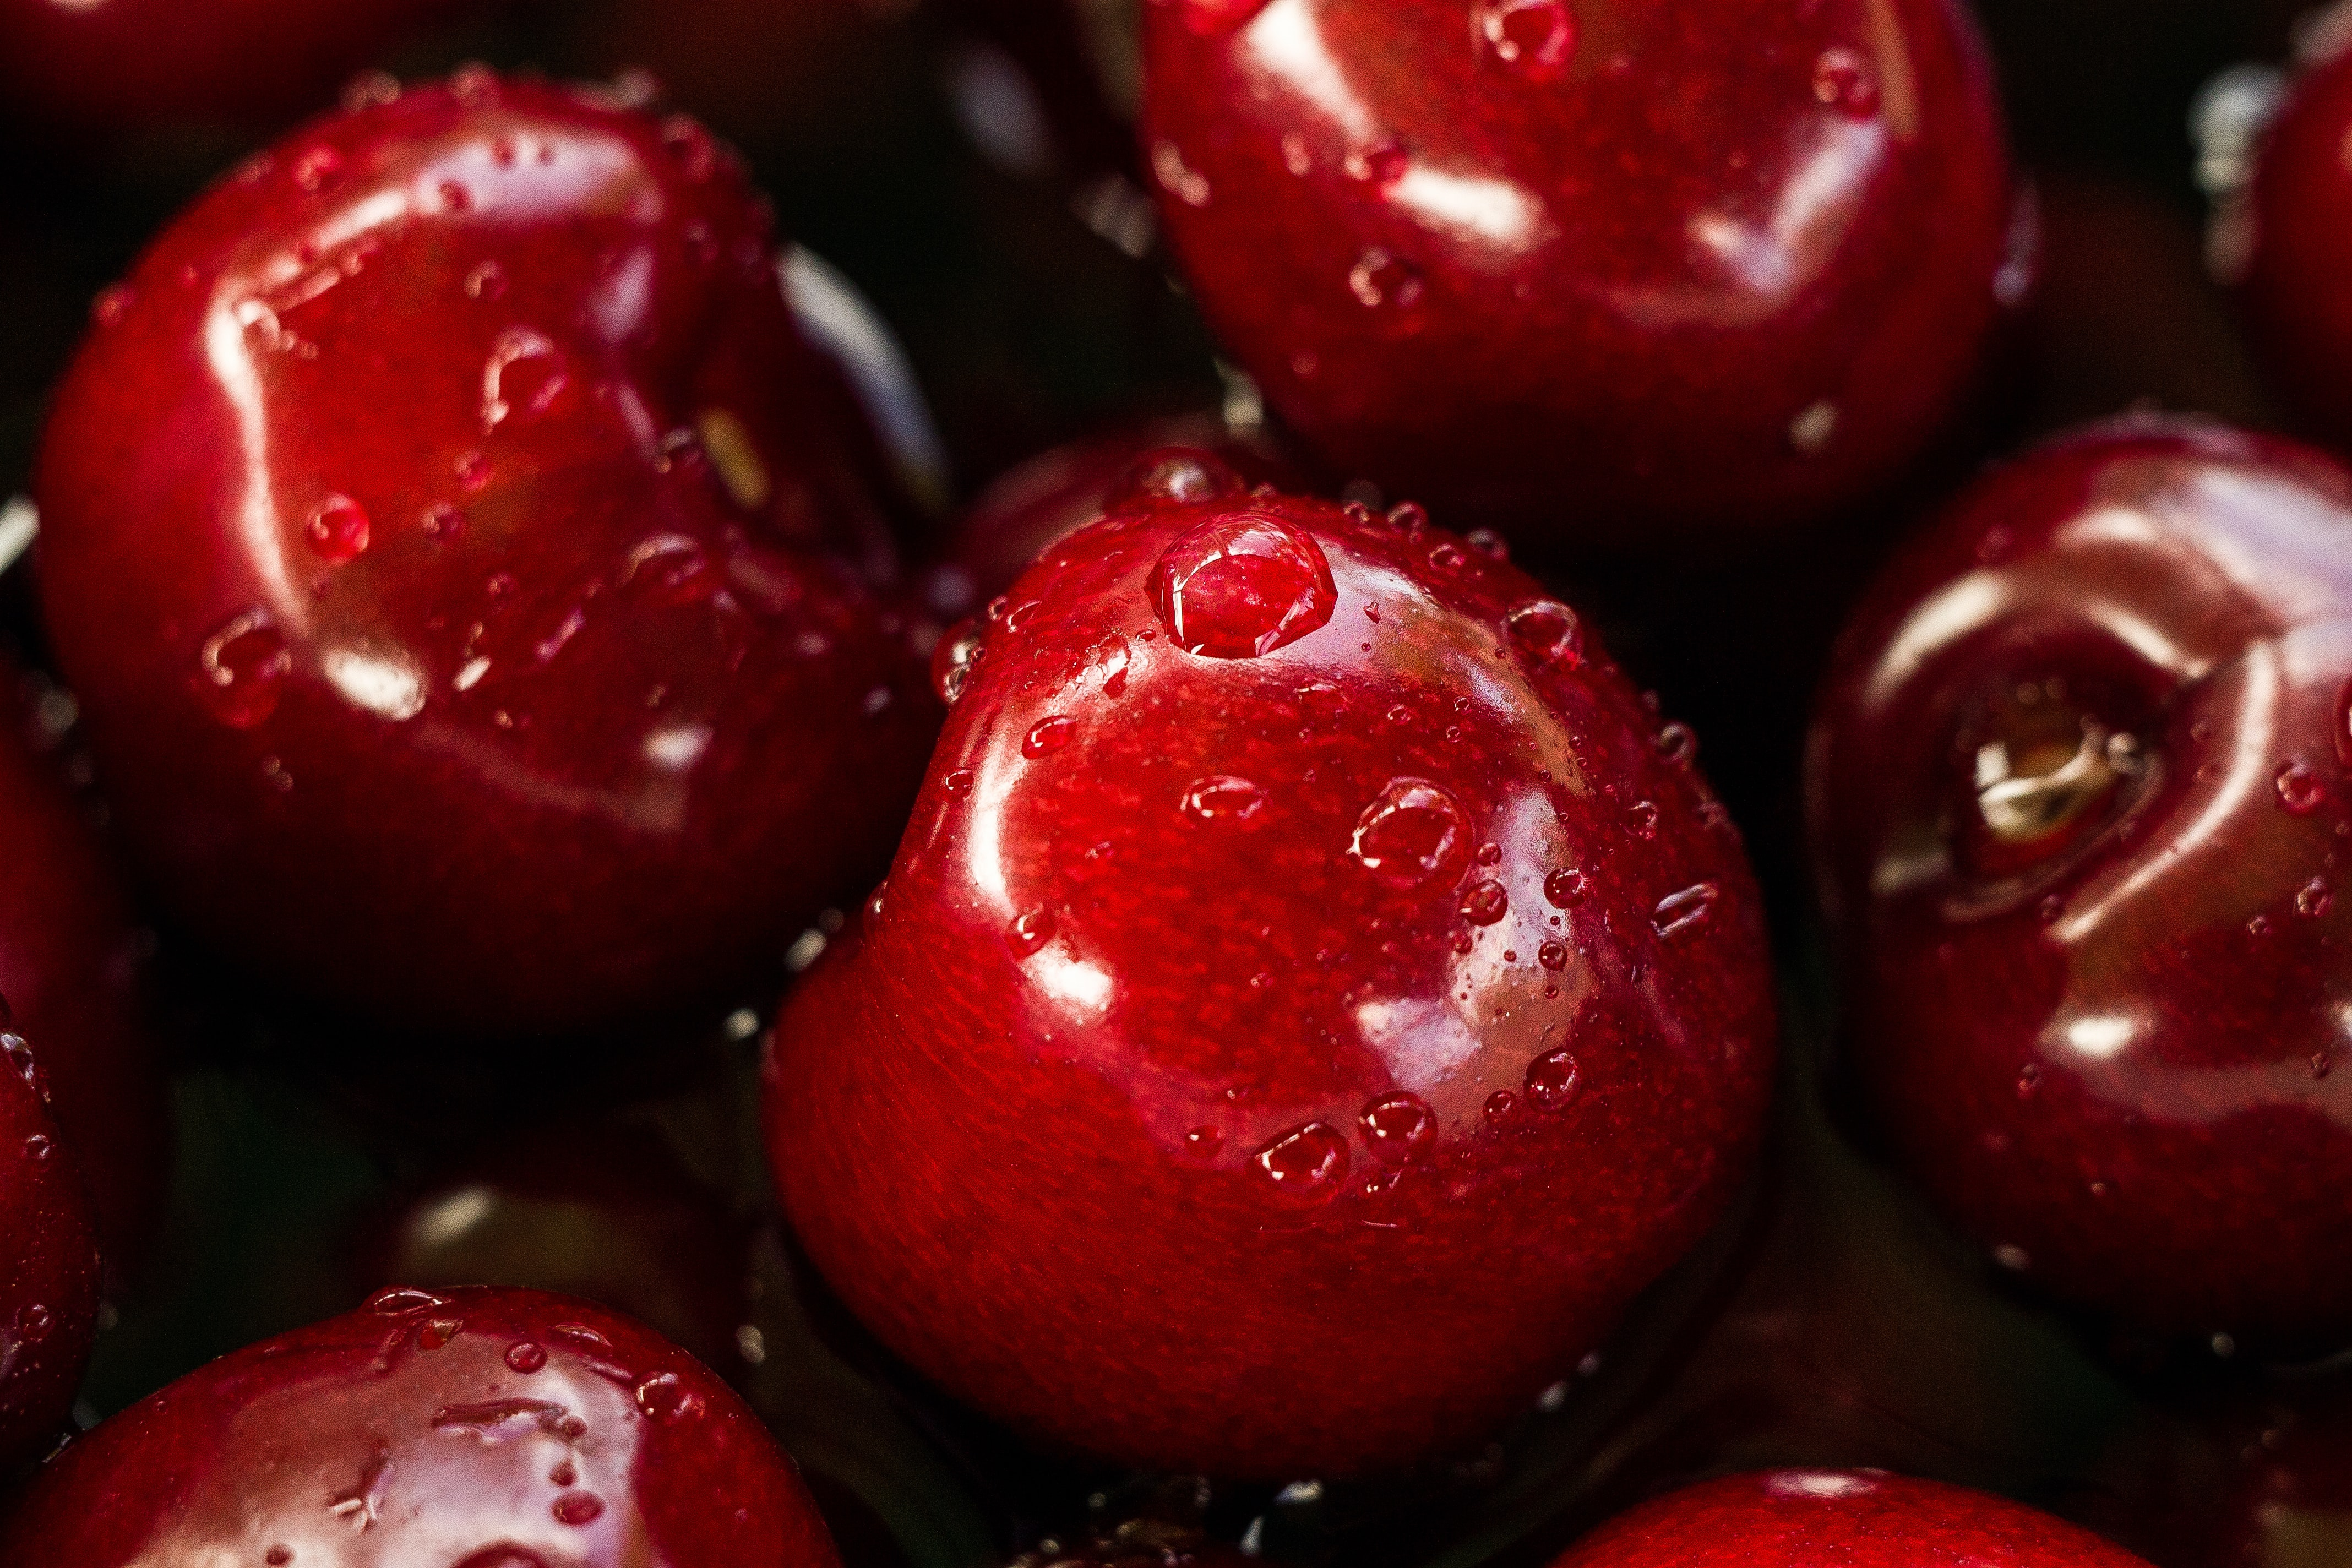 Water droplets of freshly washed red cherries